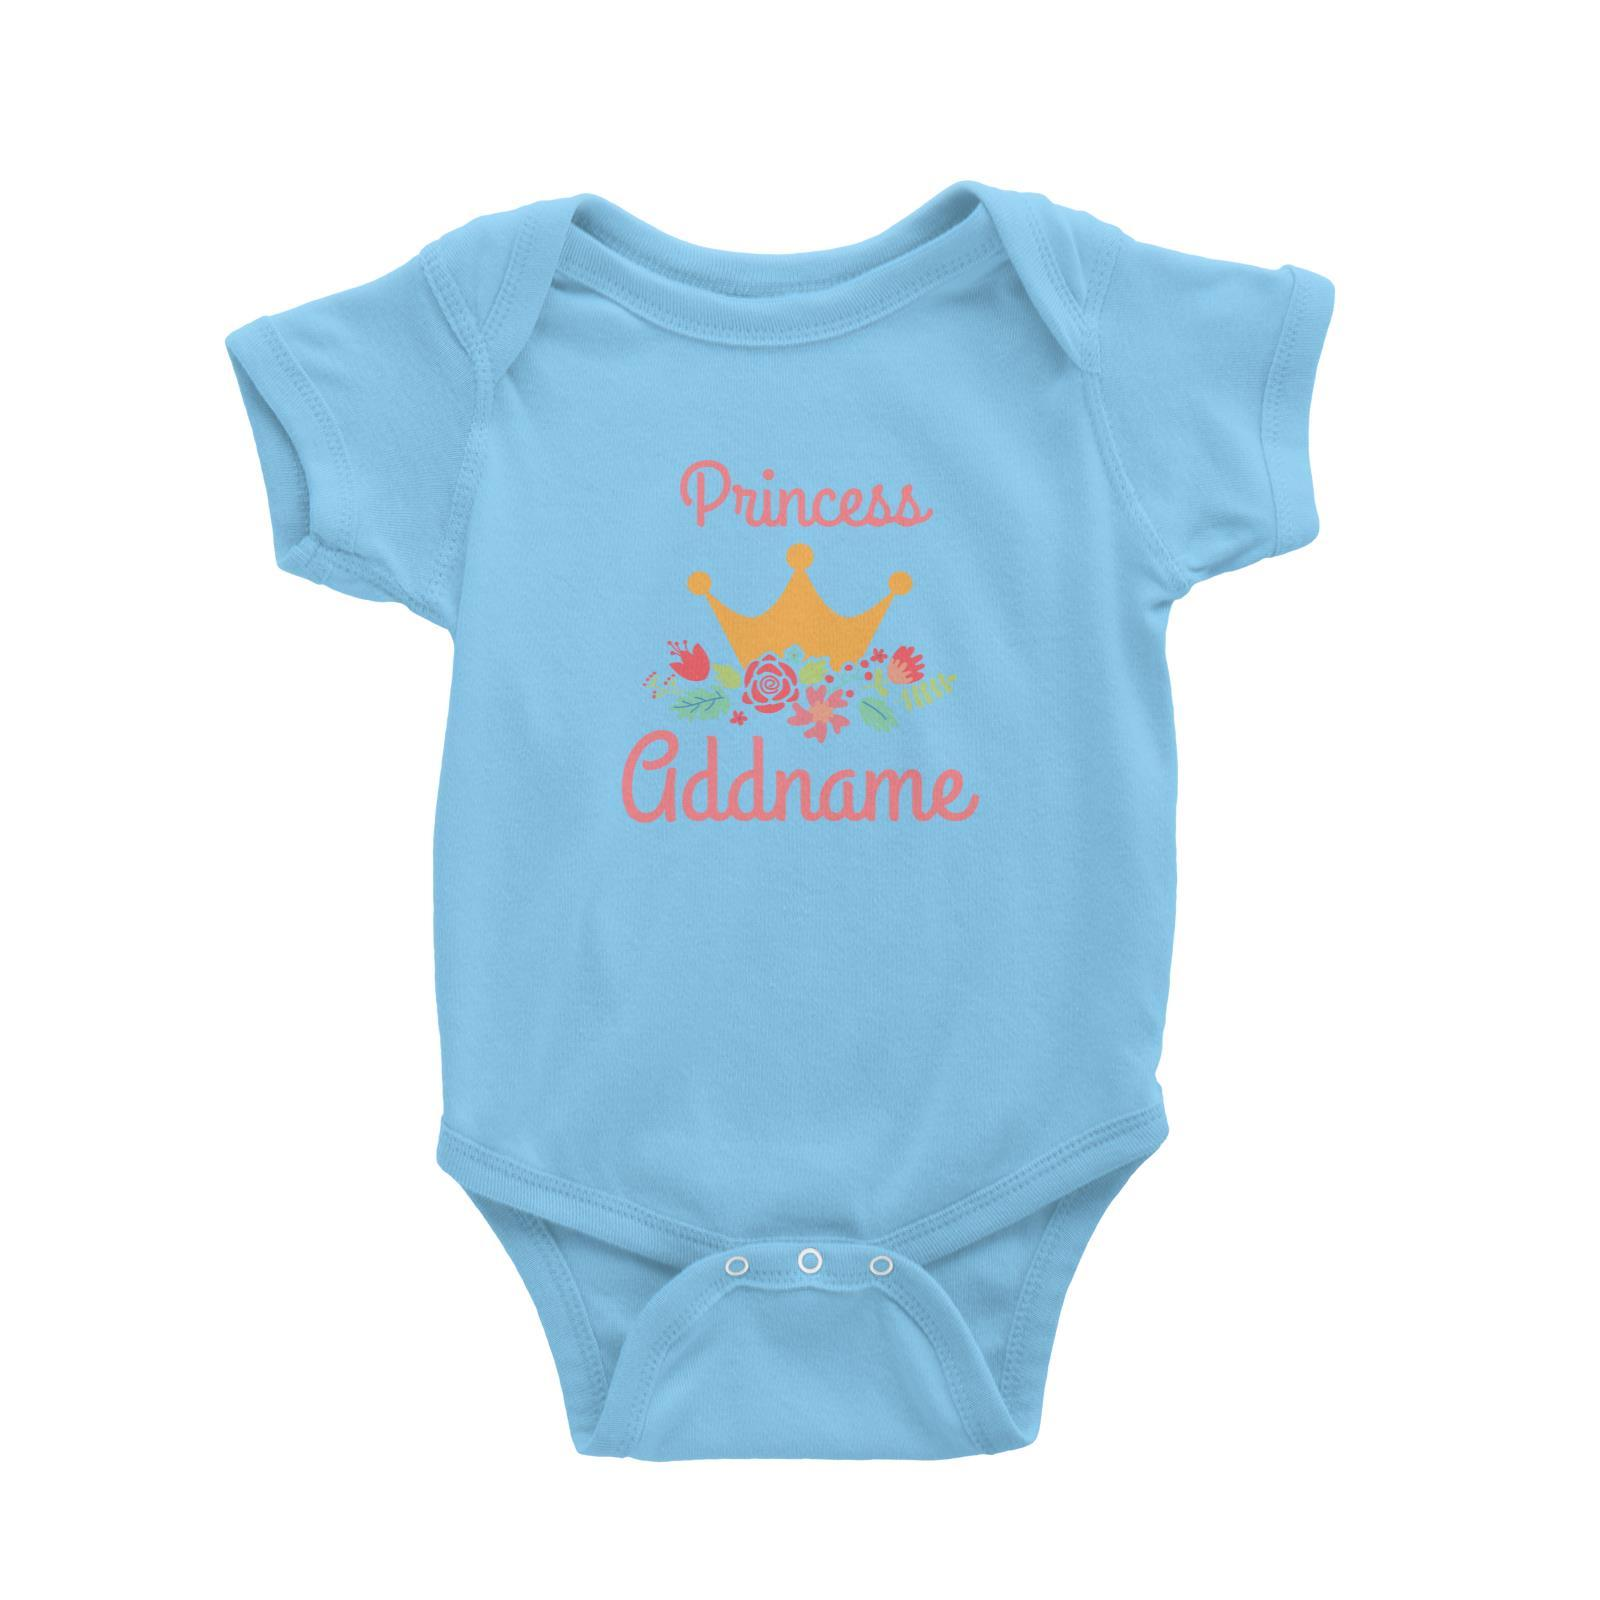 Princess Addname with Tiara and Flowers Baby Romper